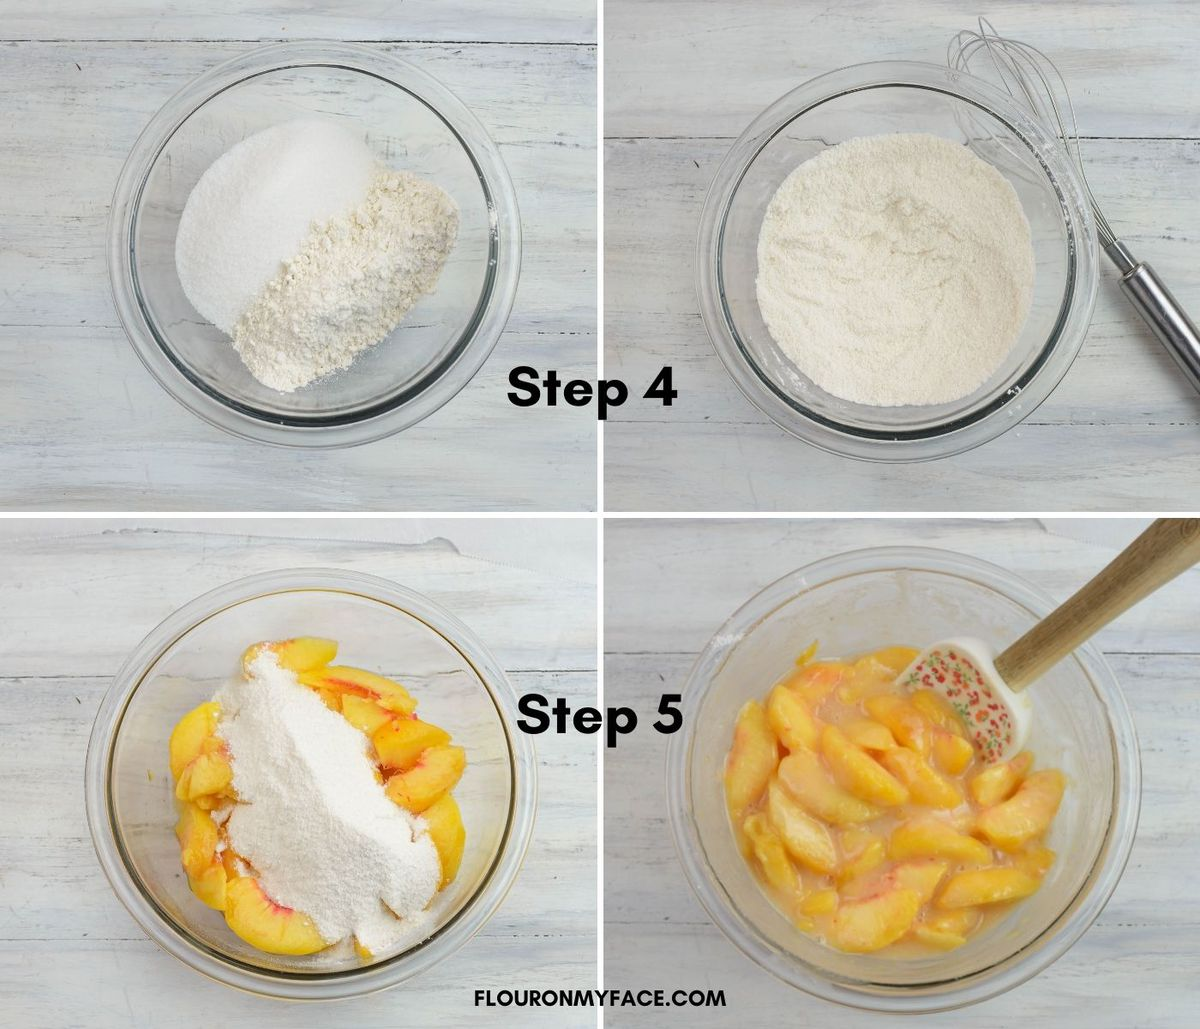 4 images showing the steps of mixing peach pie filling.